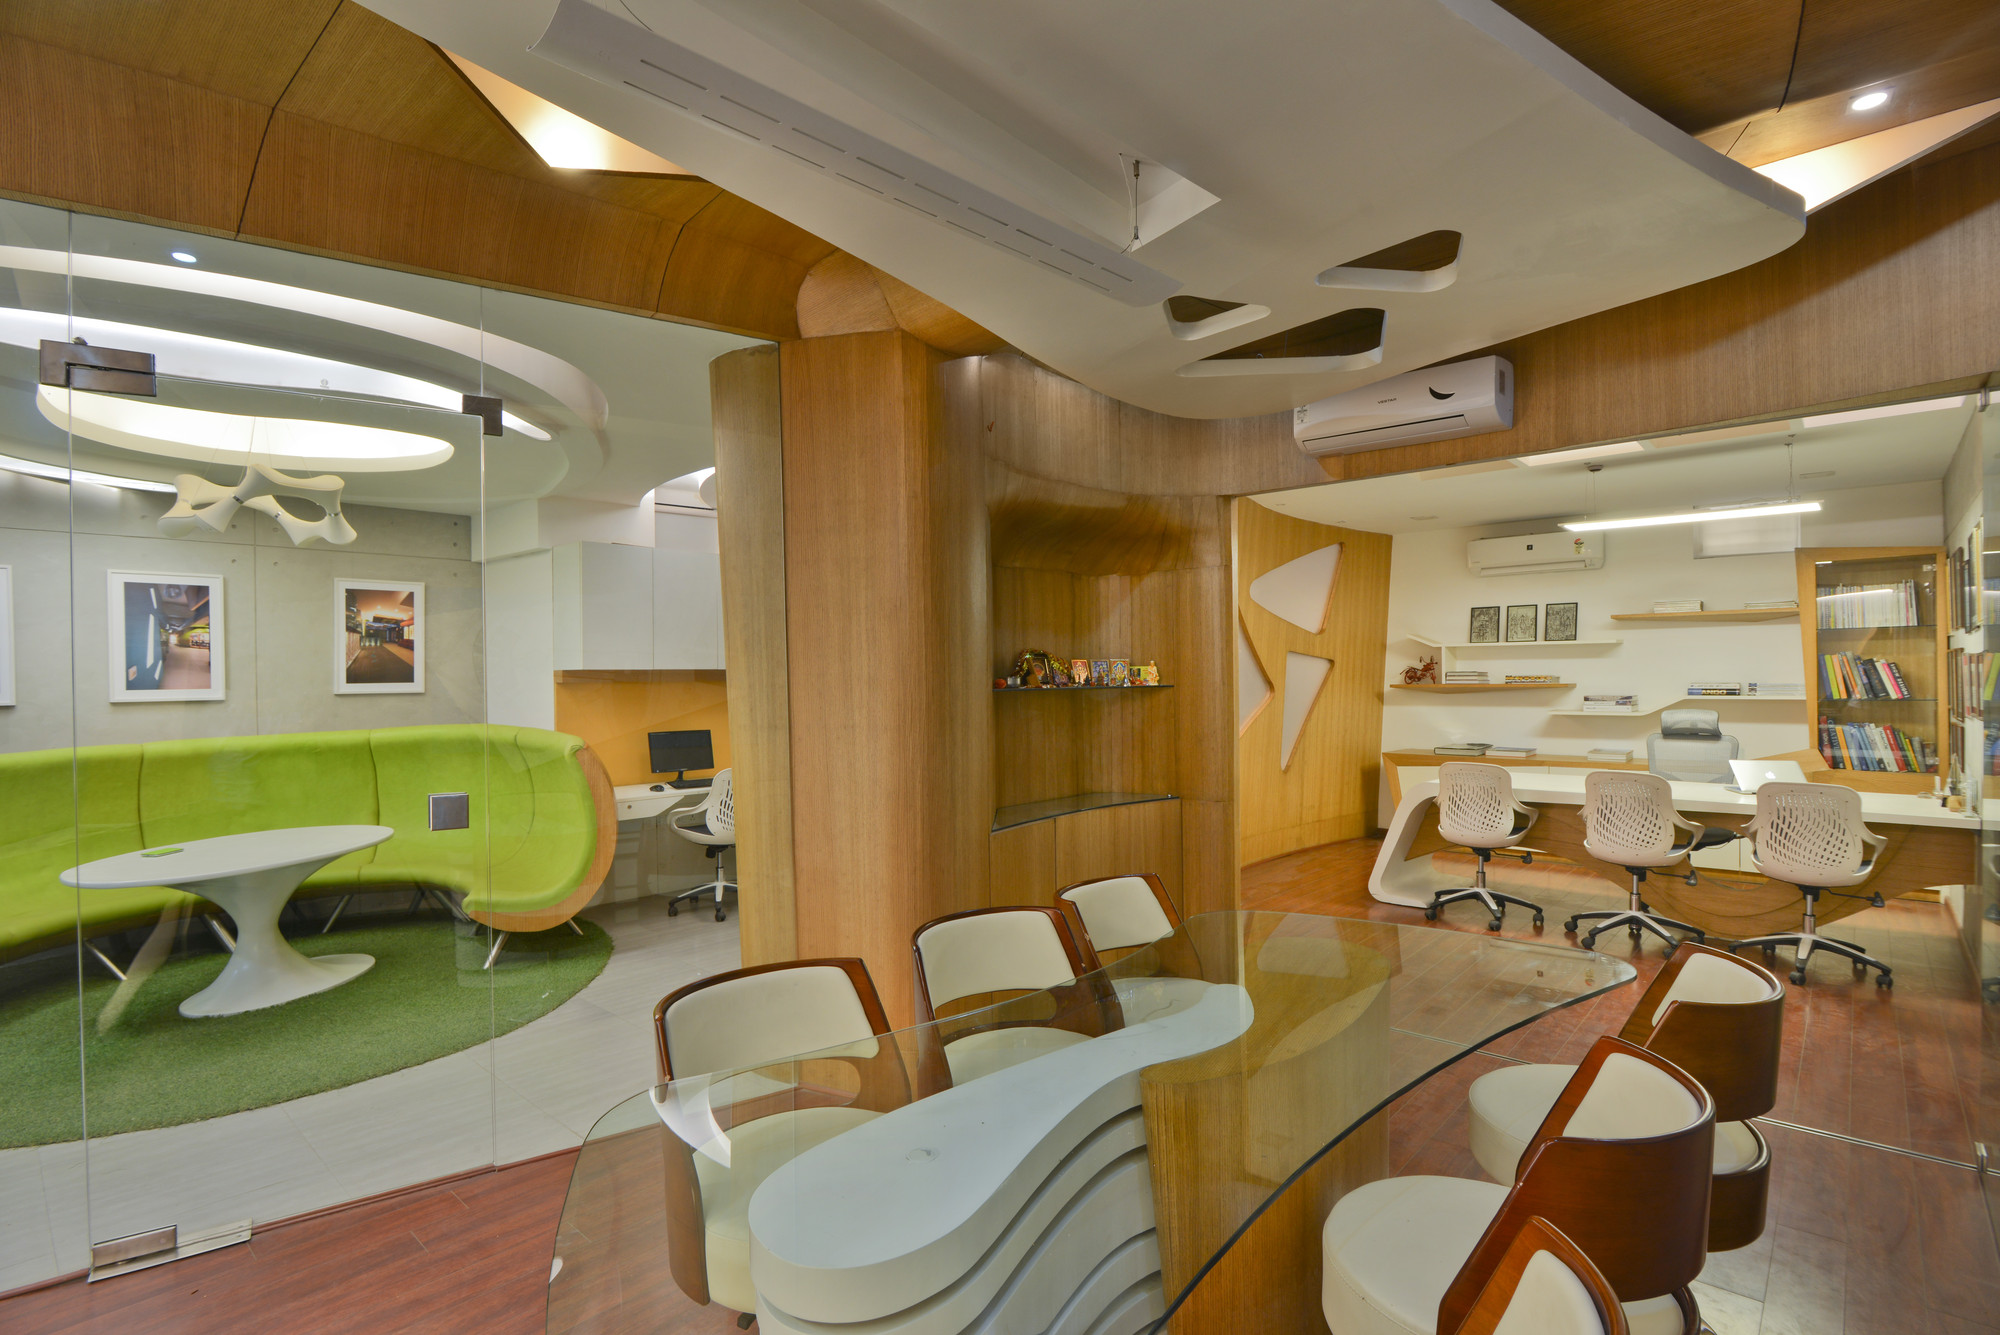 Gallery of architect s office spaces architects ka 2 for Spaces architects safdarjung